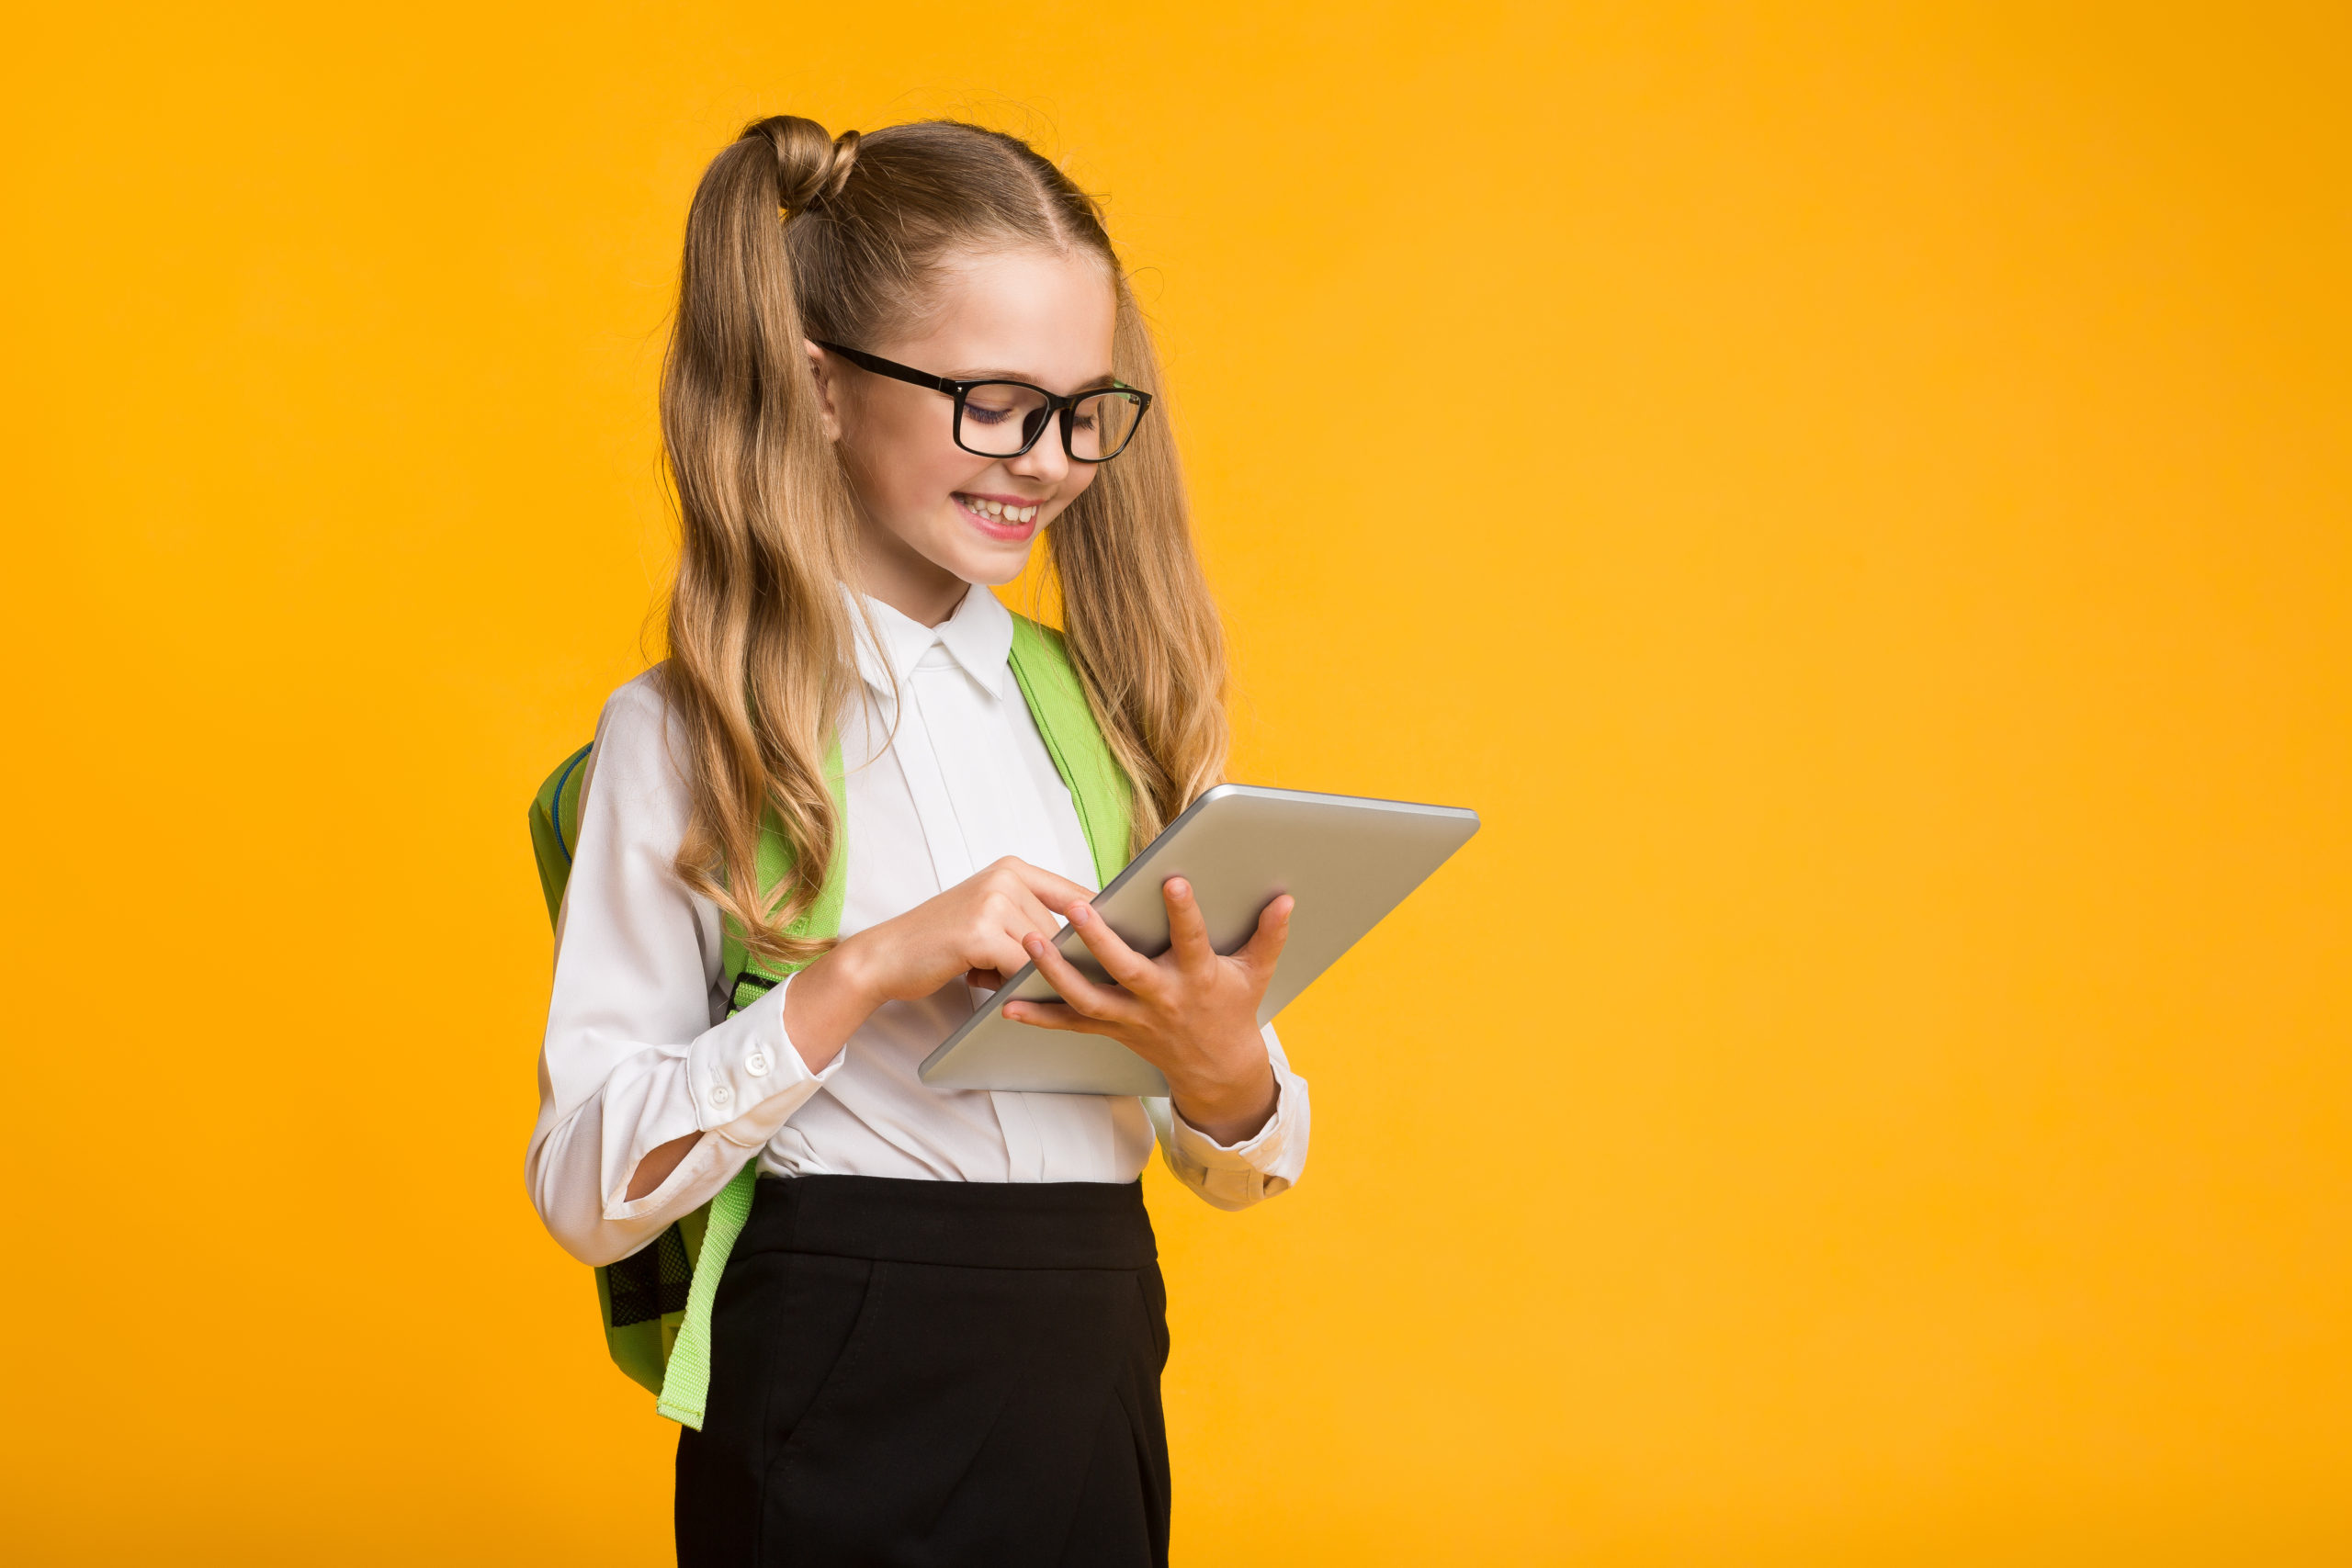 Gadgets And School. Cheerful Schoolgirl Using Tablet Computer Browsing Internet Over Yellow Background. Copy Space